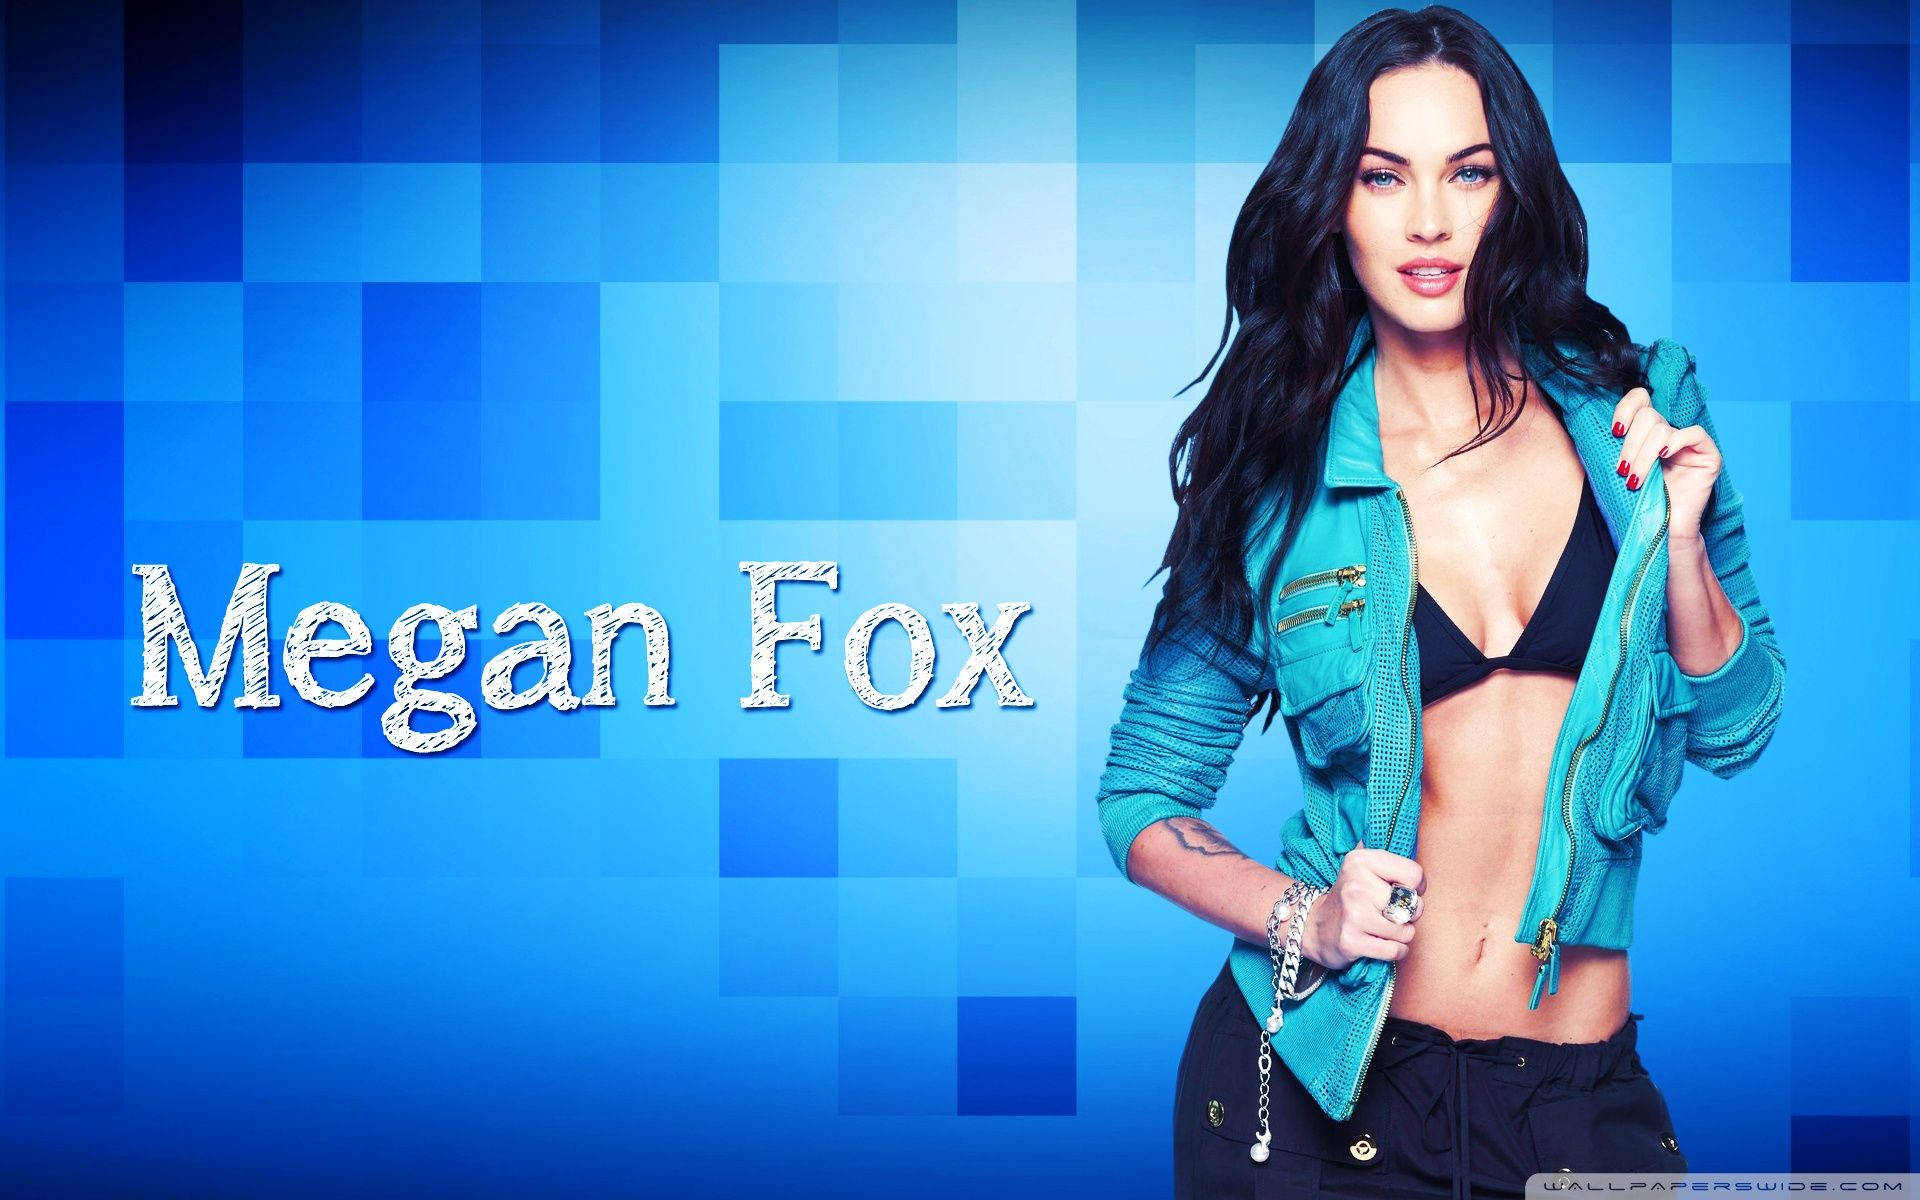 hottest megan fox hd wallpapers images best photos collection